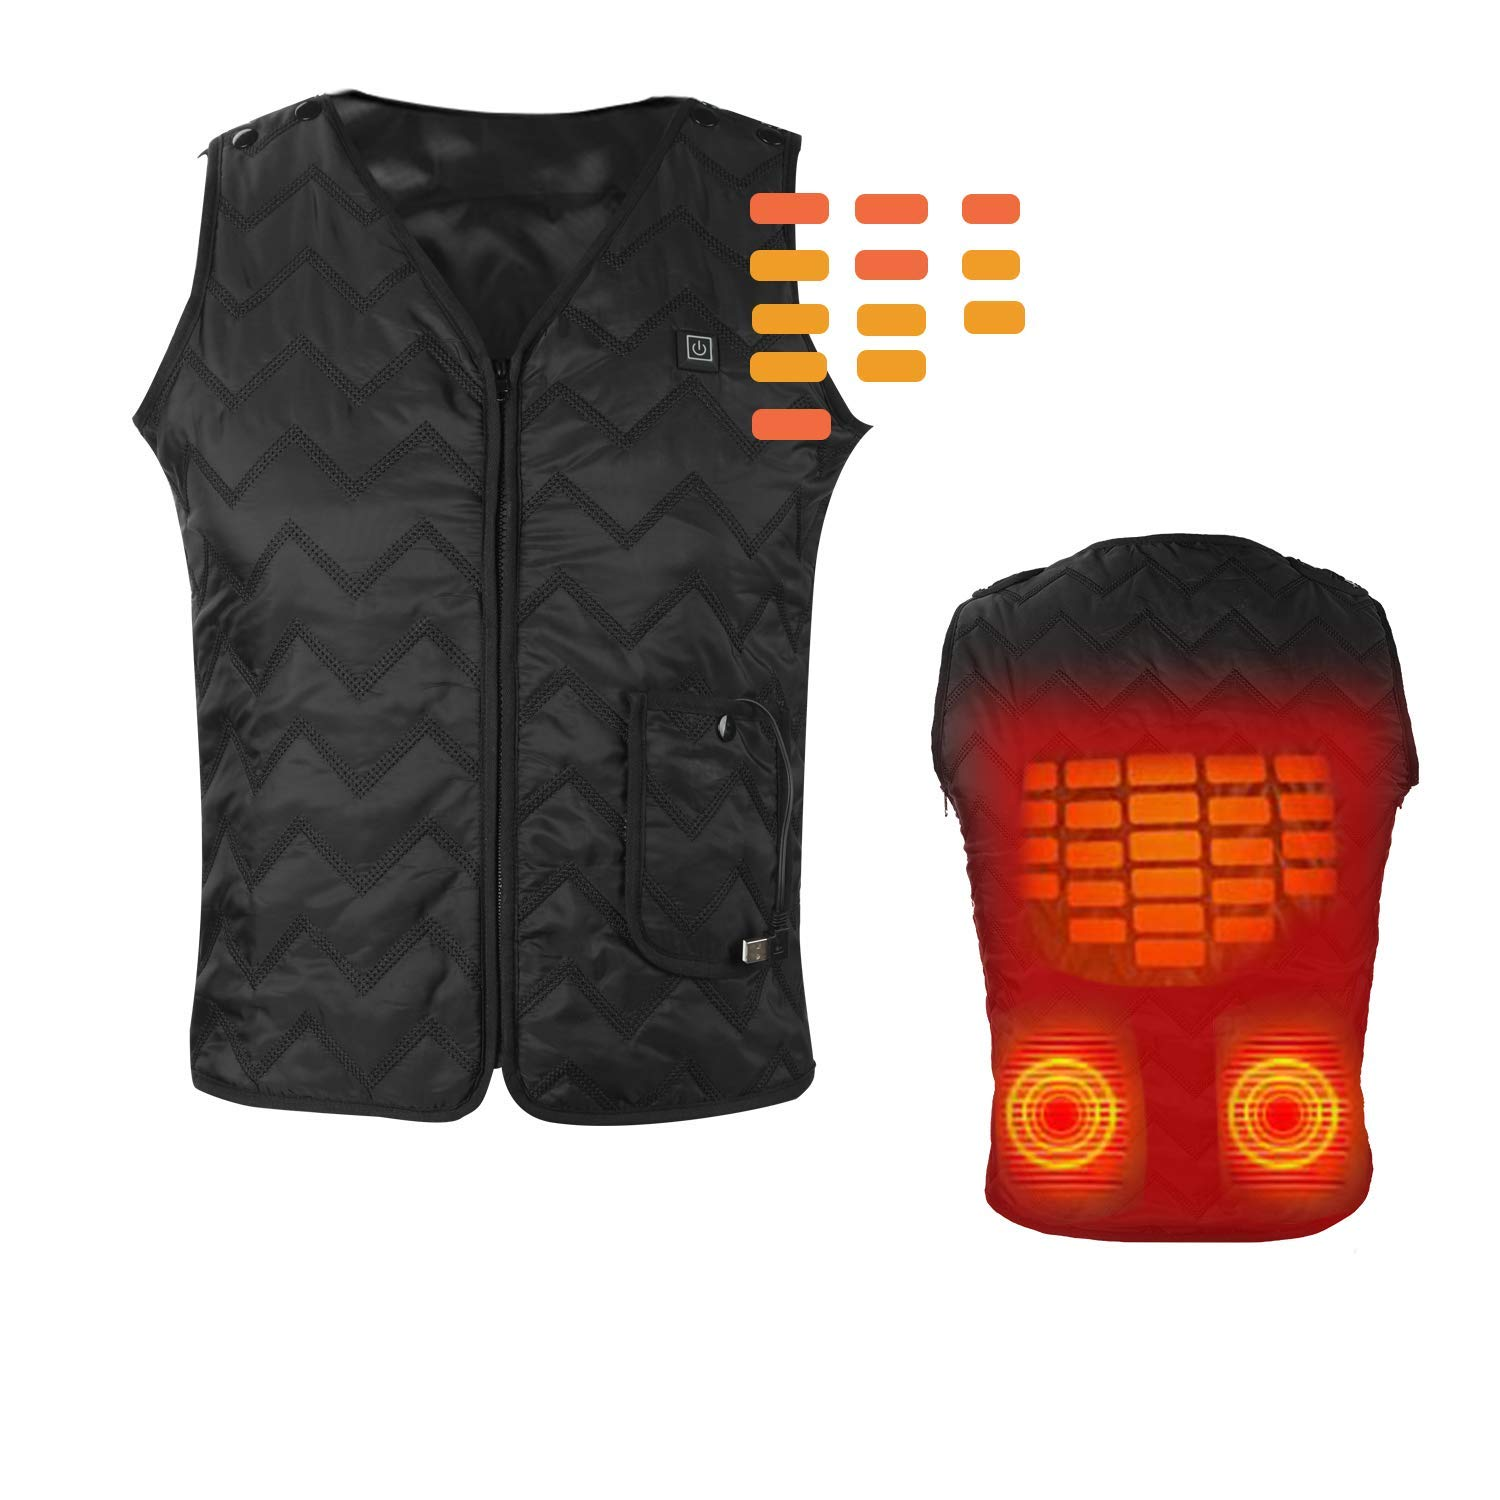 Heating Electric Vest Heated Jacket Cold-Proof Heating Clothes Washable Four Sizes Adjustment (Battery Not Included) Black by YZFDBSX